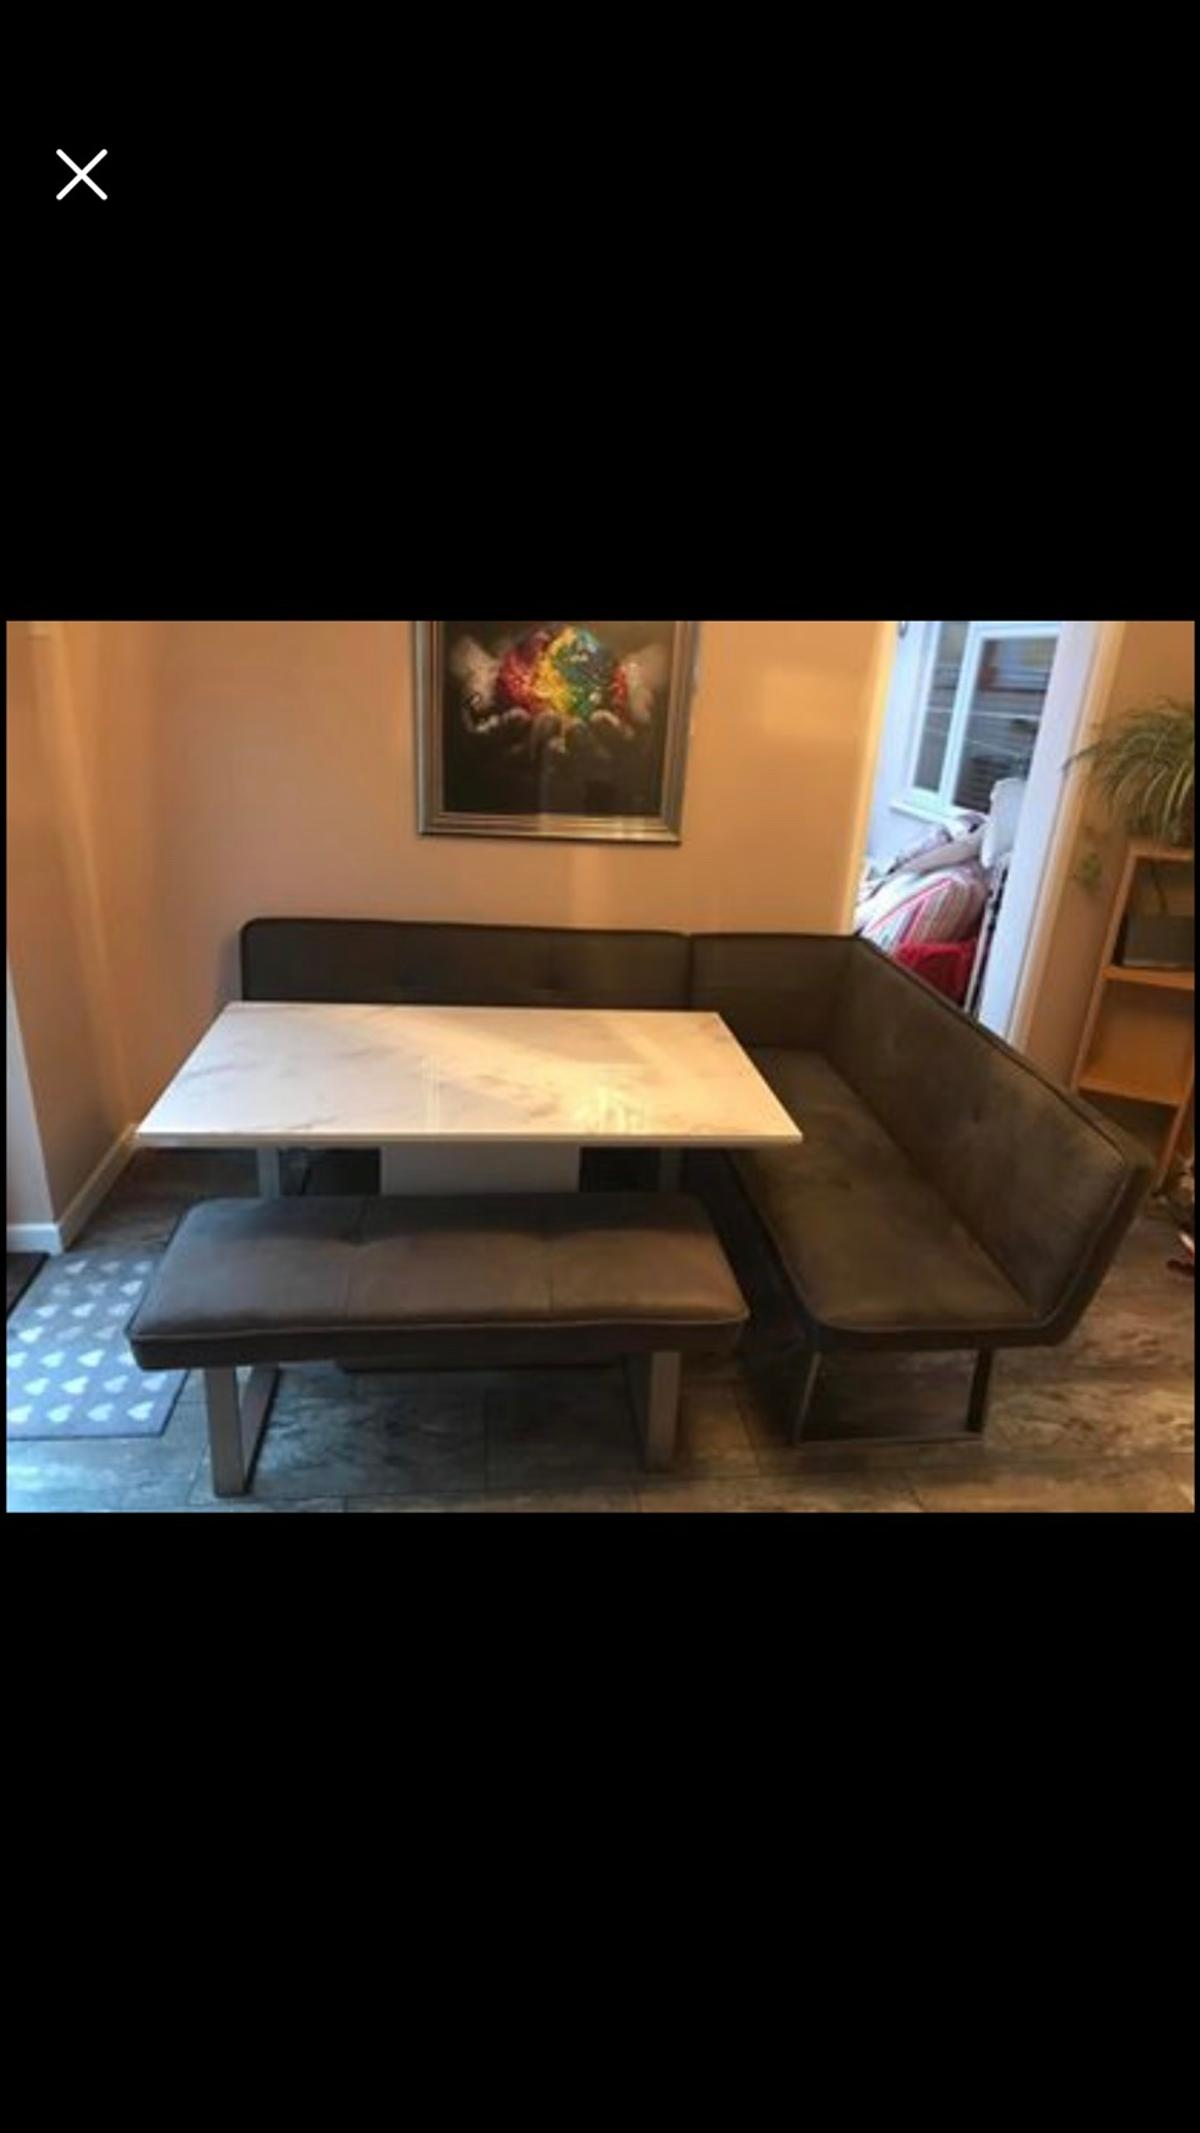 Central Park Dining Room Table With Benches In Po15 Fareham For 700 00 For Sale Shpock